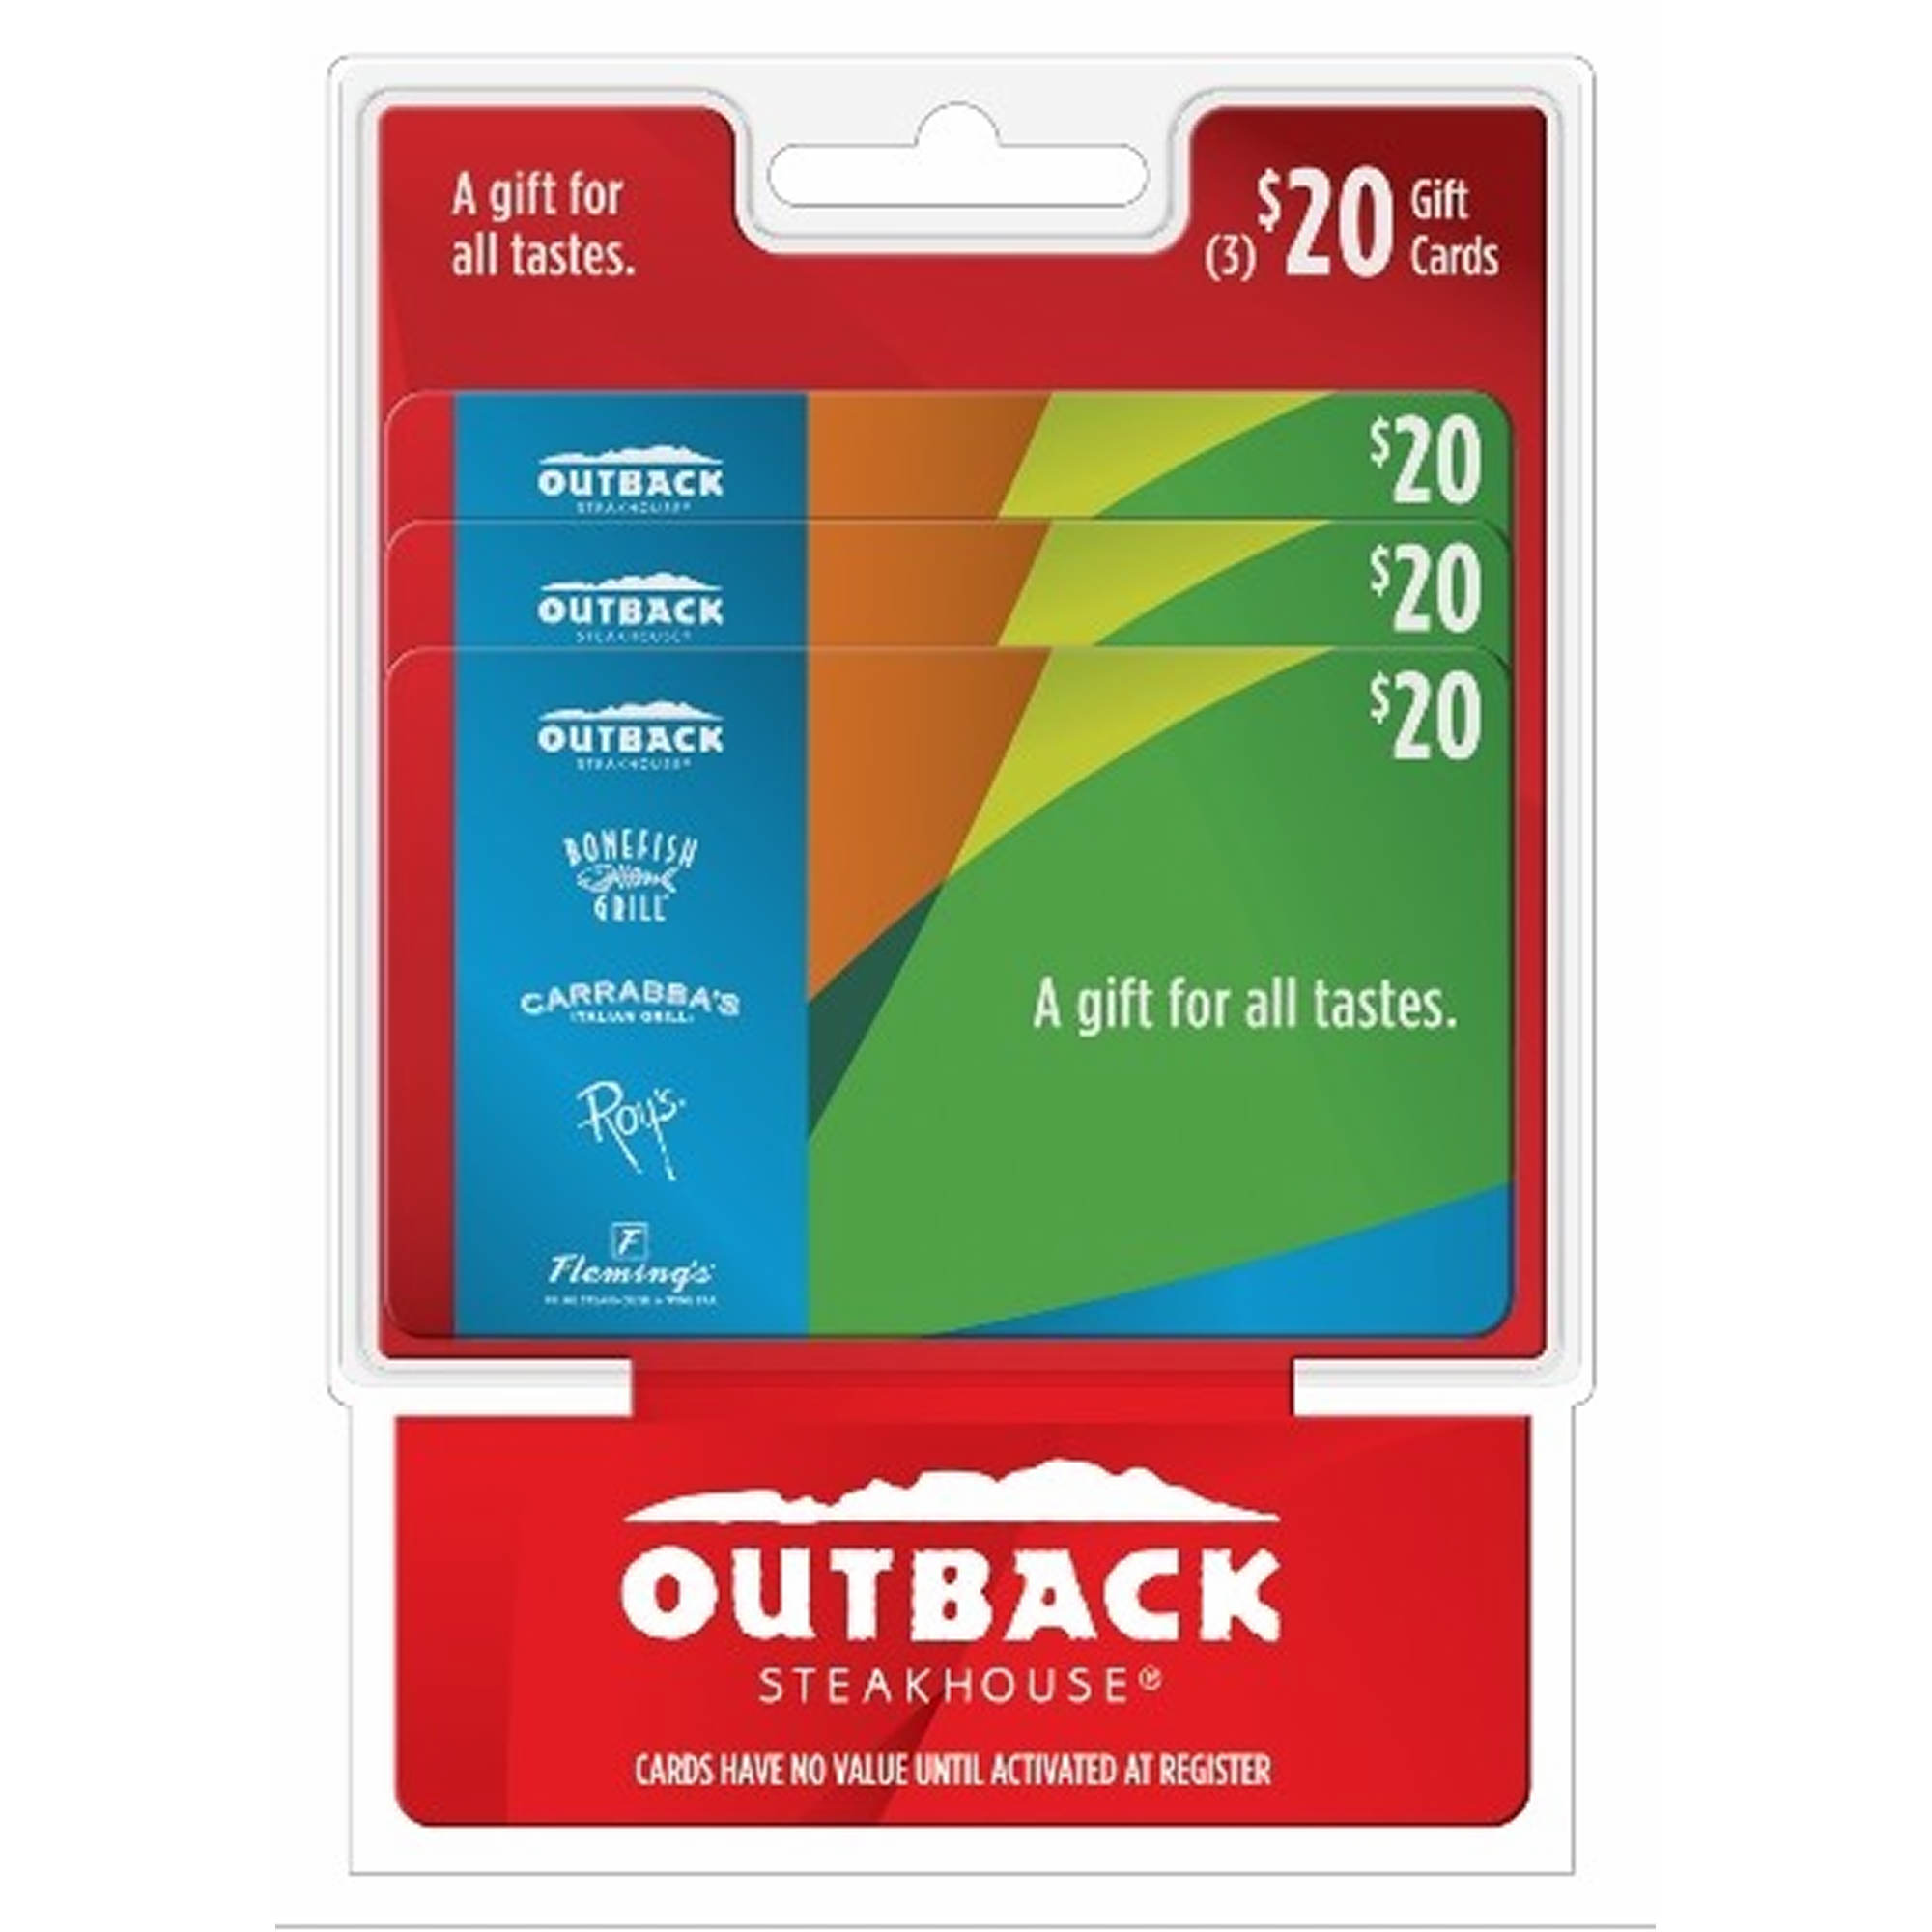 outback gift card balance photo - 1